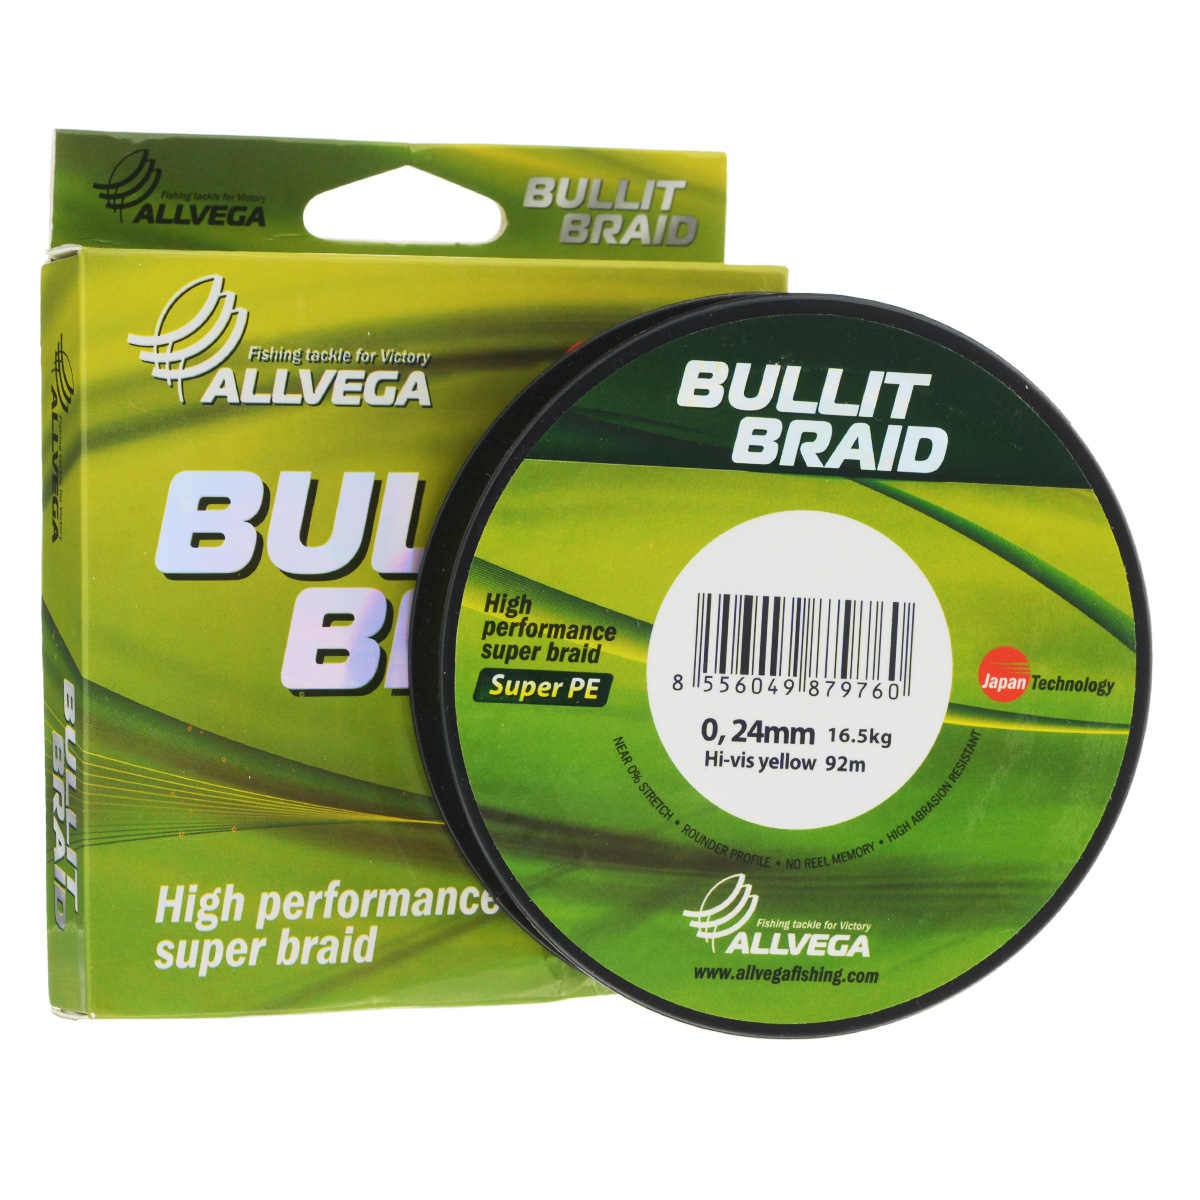 Леска плетеная Allvega Bullit Braid, цвет: ярко-желтый, 92 м, 0,24 мм, 16,5 кг